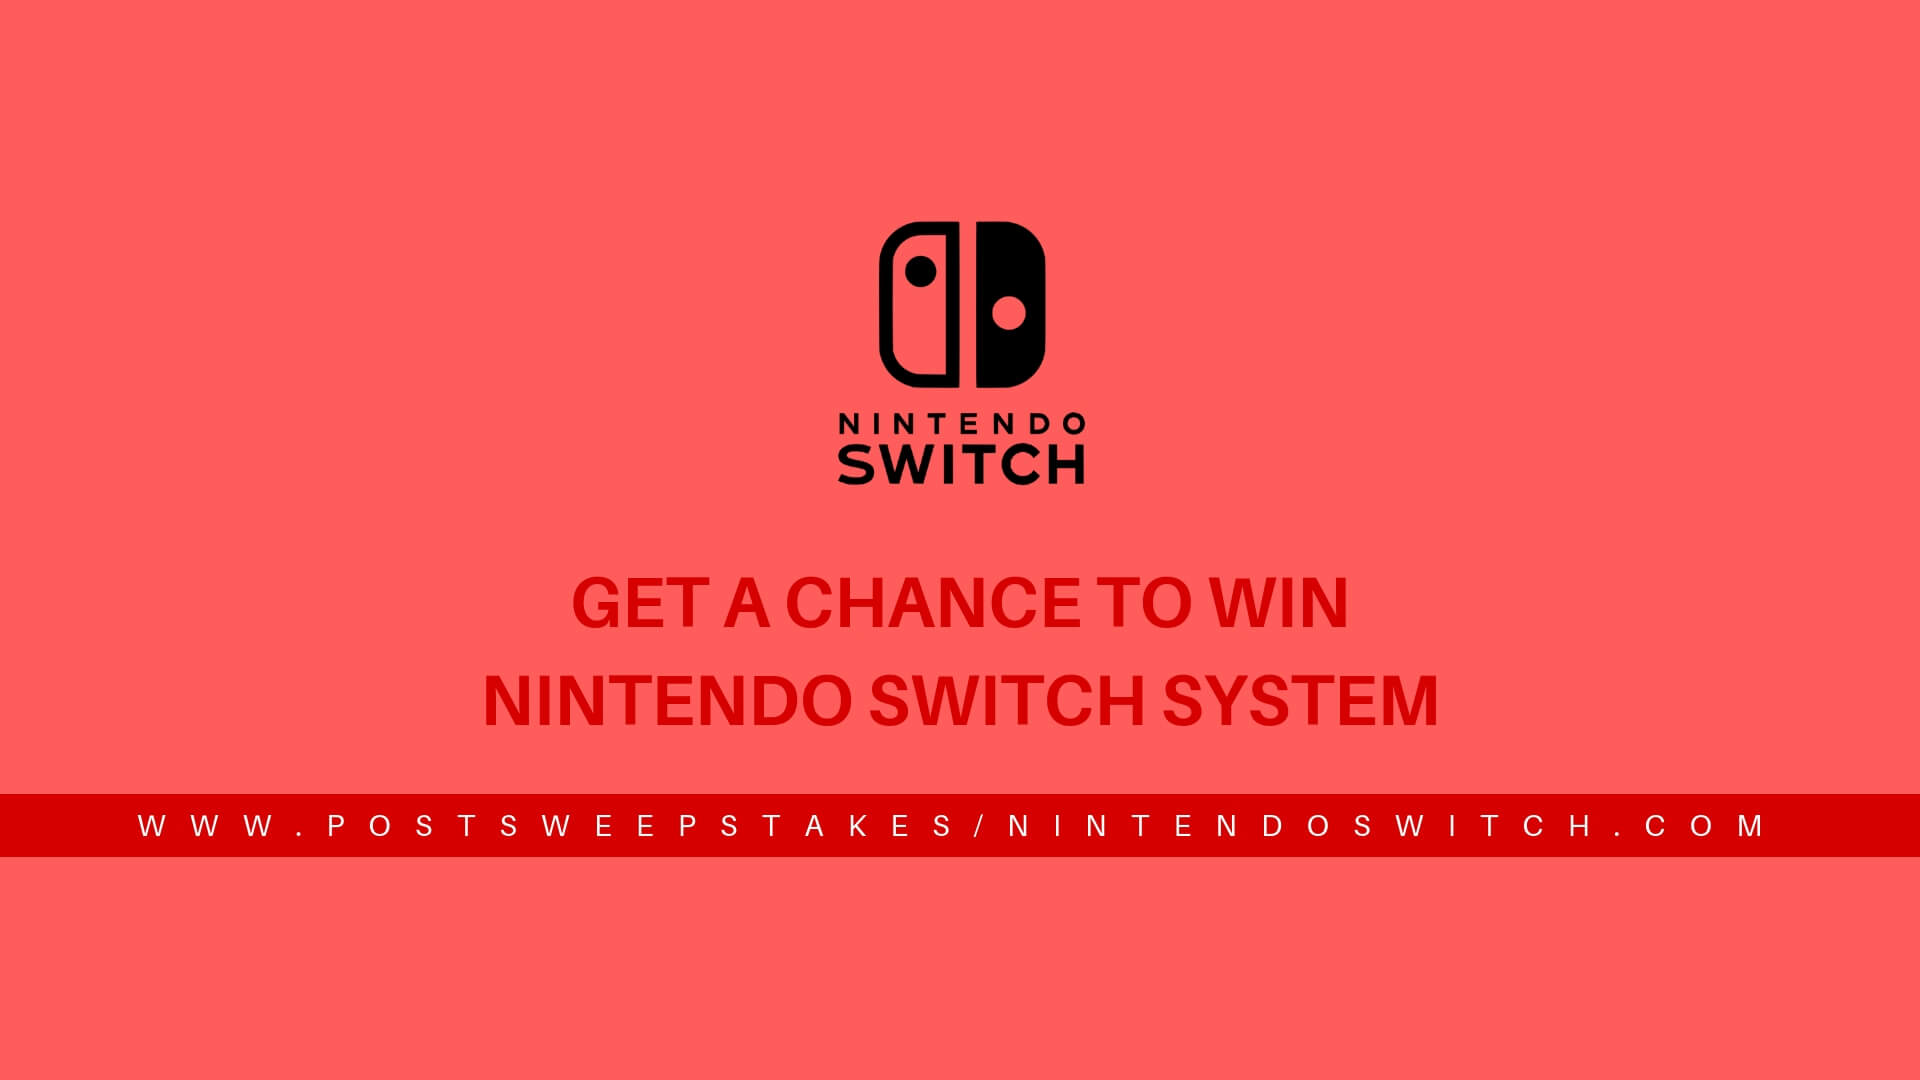 Post sweepstakes/nintendo switch | Share Your Feedback & Get Free Nintendo Switch System